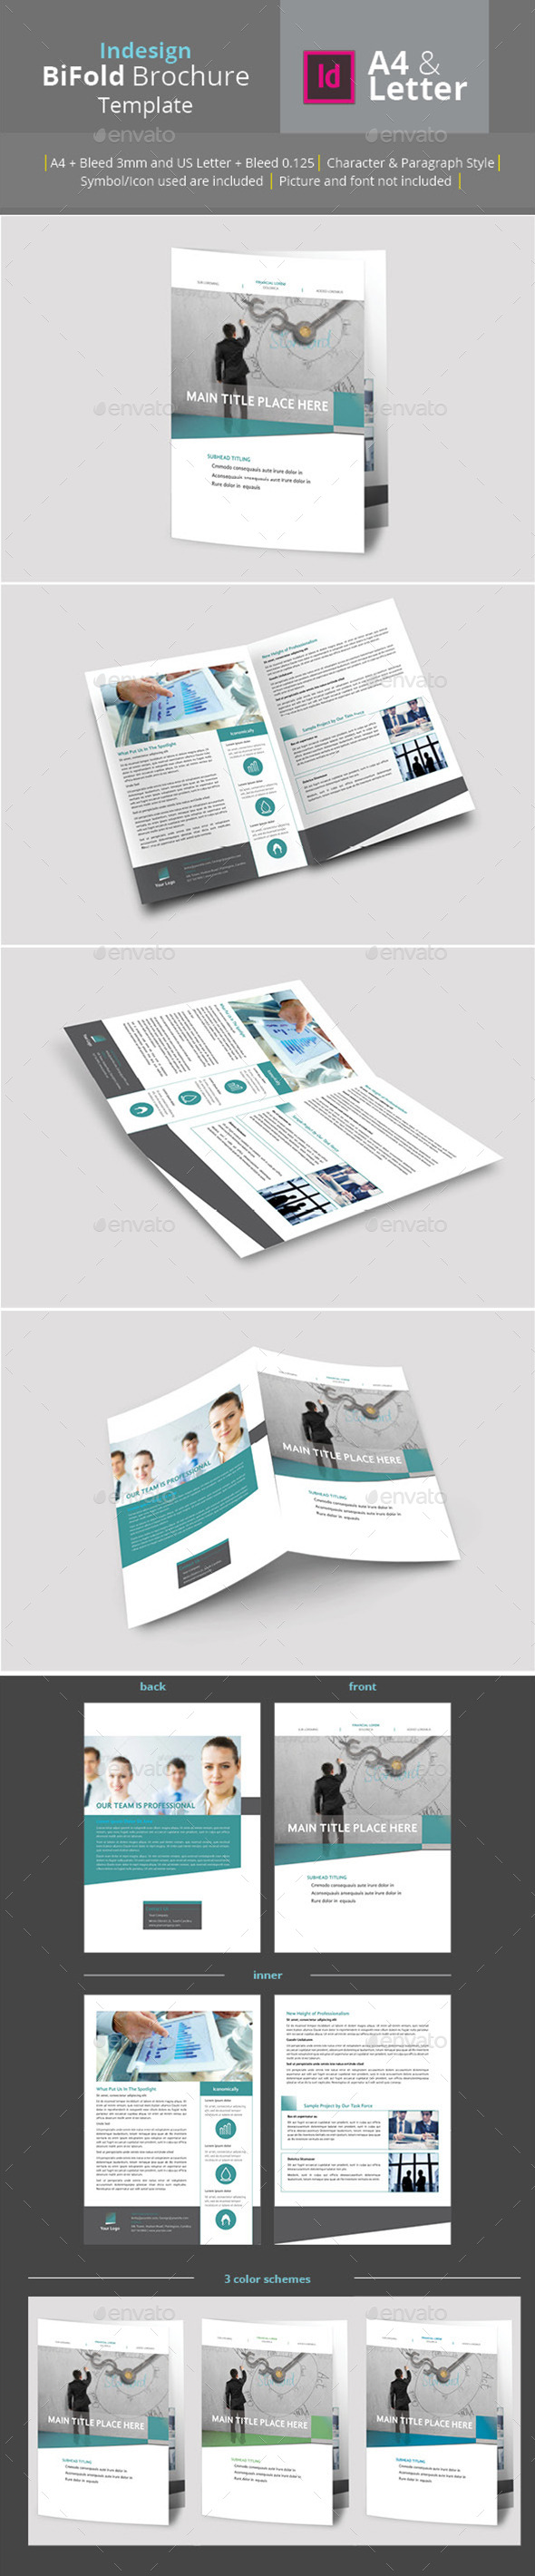 Bifold Brochure A4 & Letter Size - Brochures Print Templates